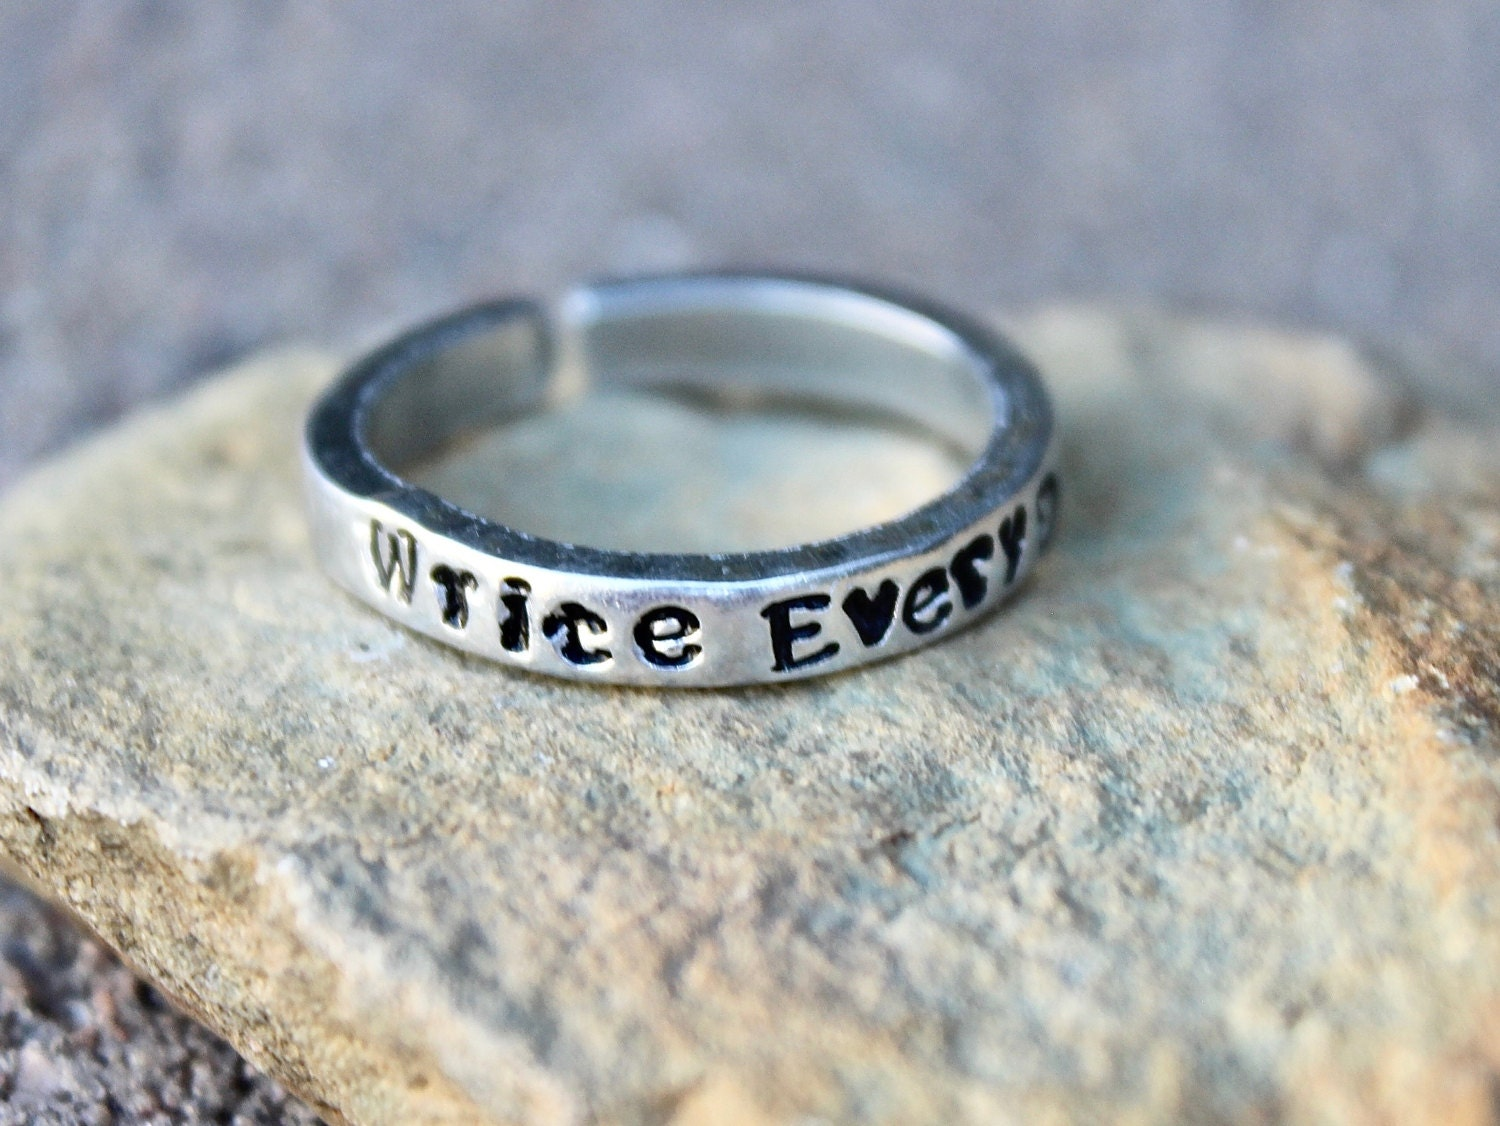 What to write on the ring